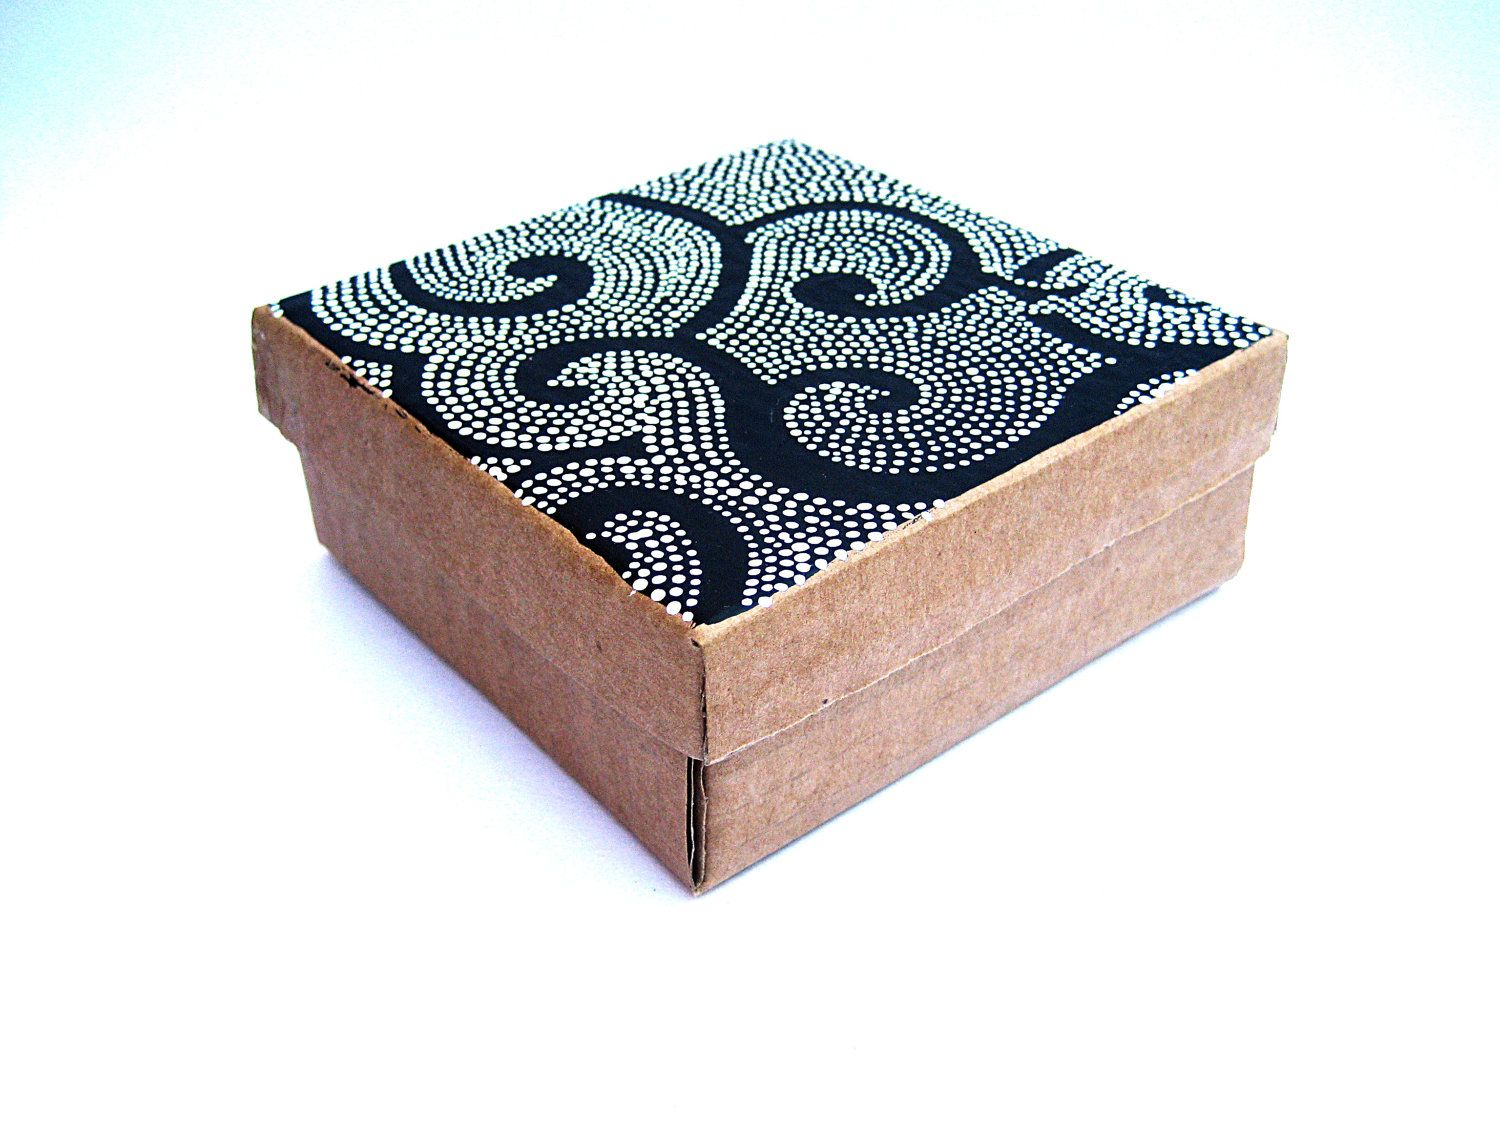 Cardboard Craft Boxes To Decorate Cardboard Box Recycled Painted With Dots Upcycled Cardboard